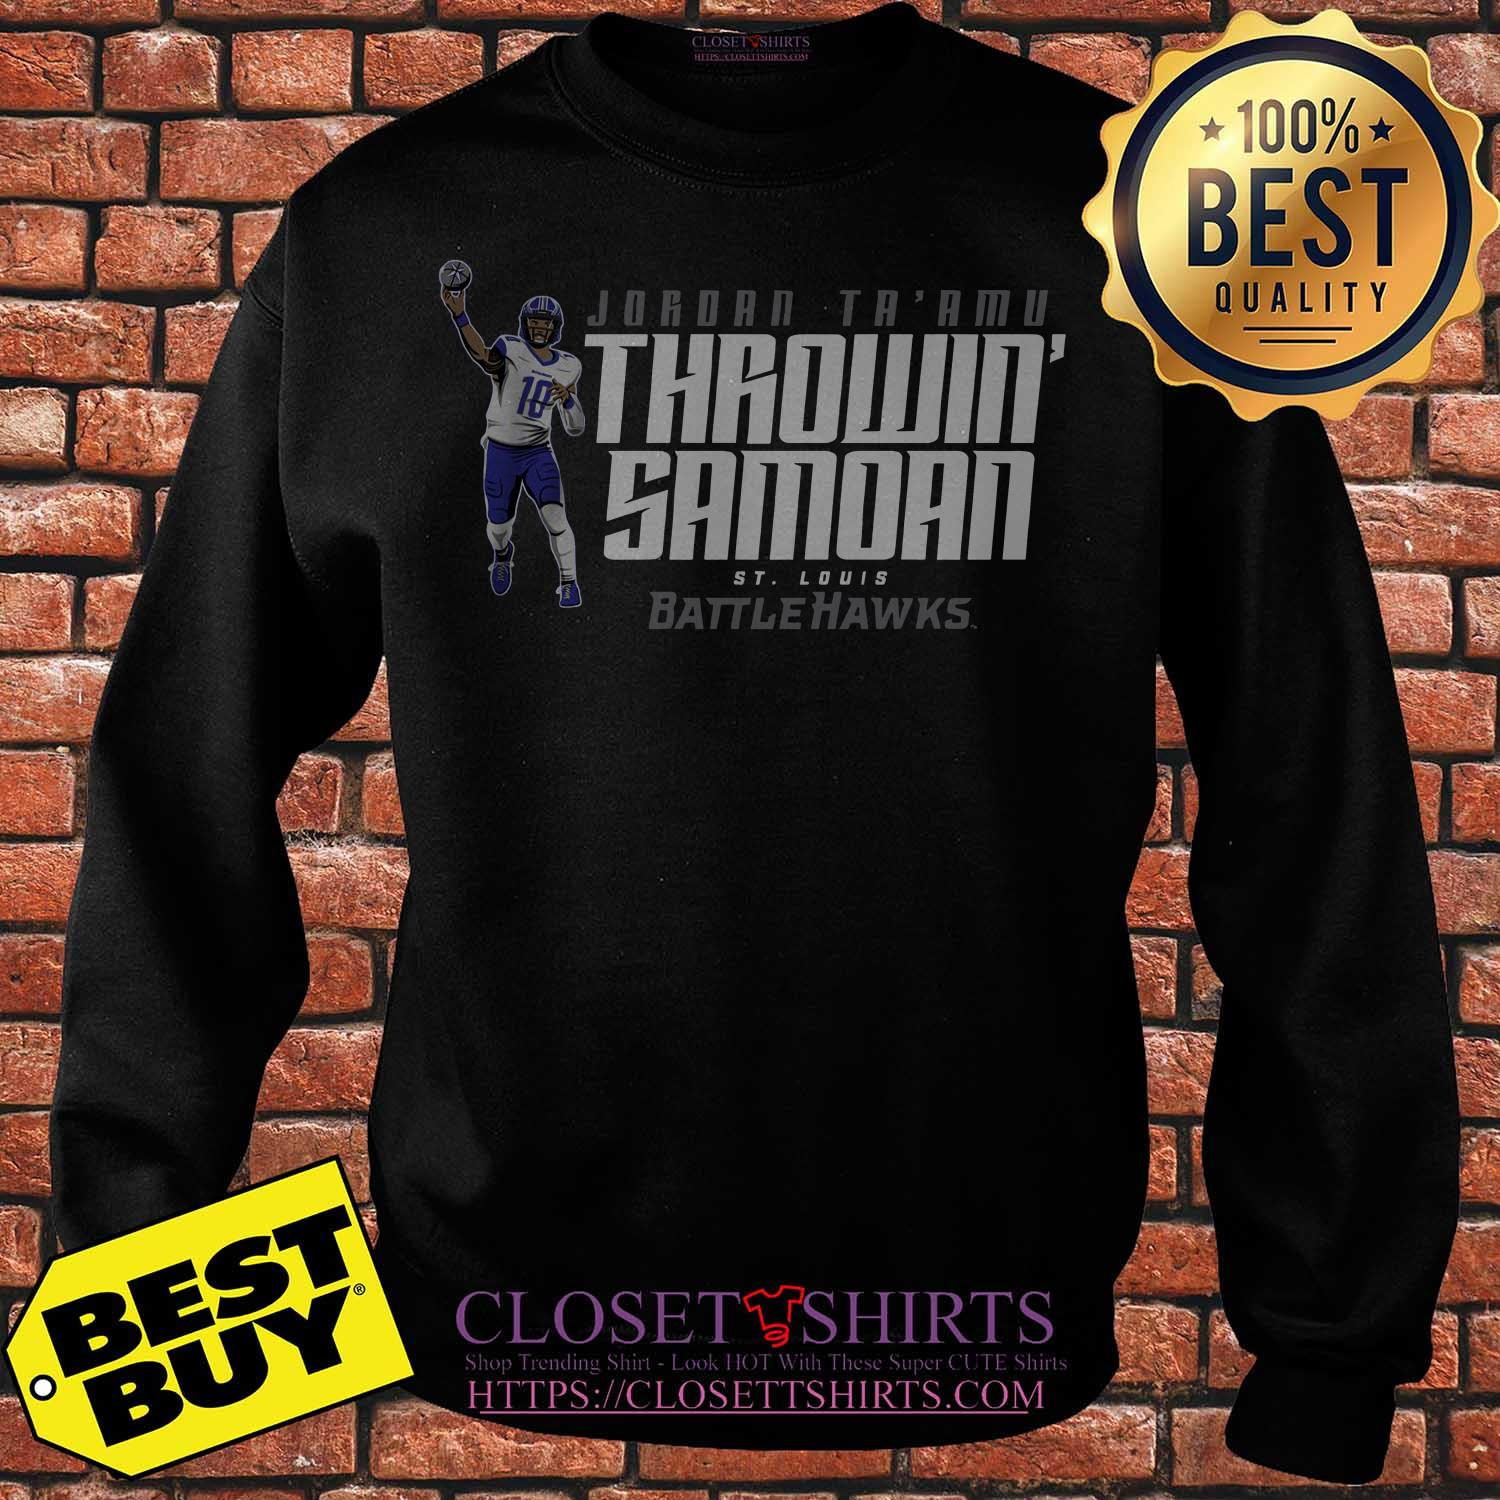 Jordan Ta'amu Throwin Samoan St.louis Battlehawks Sweater